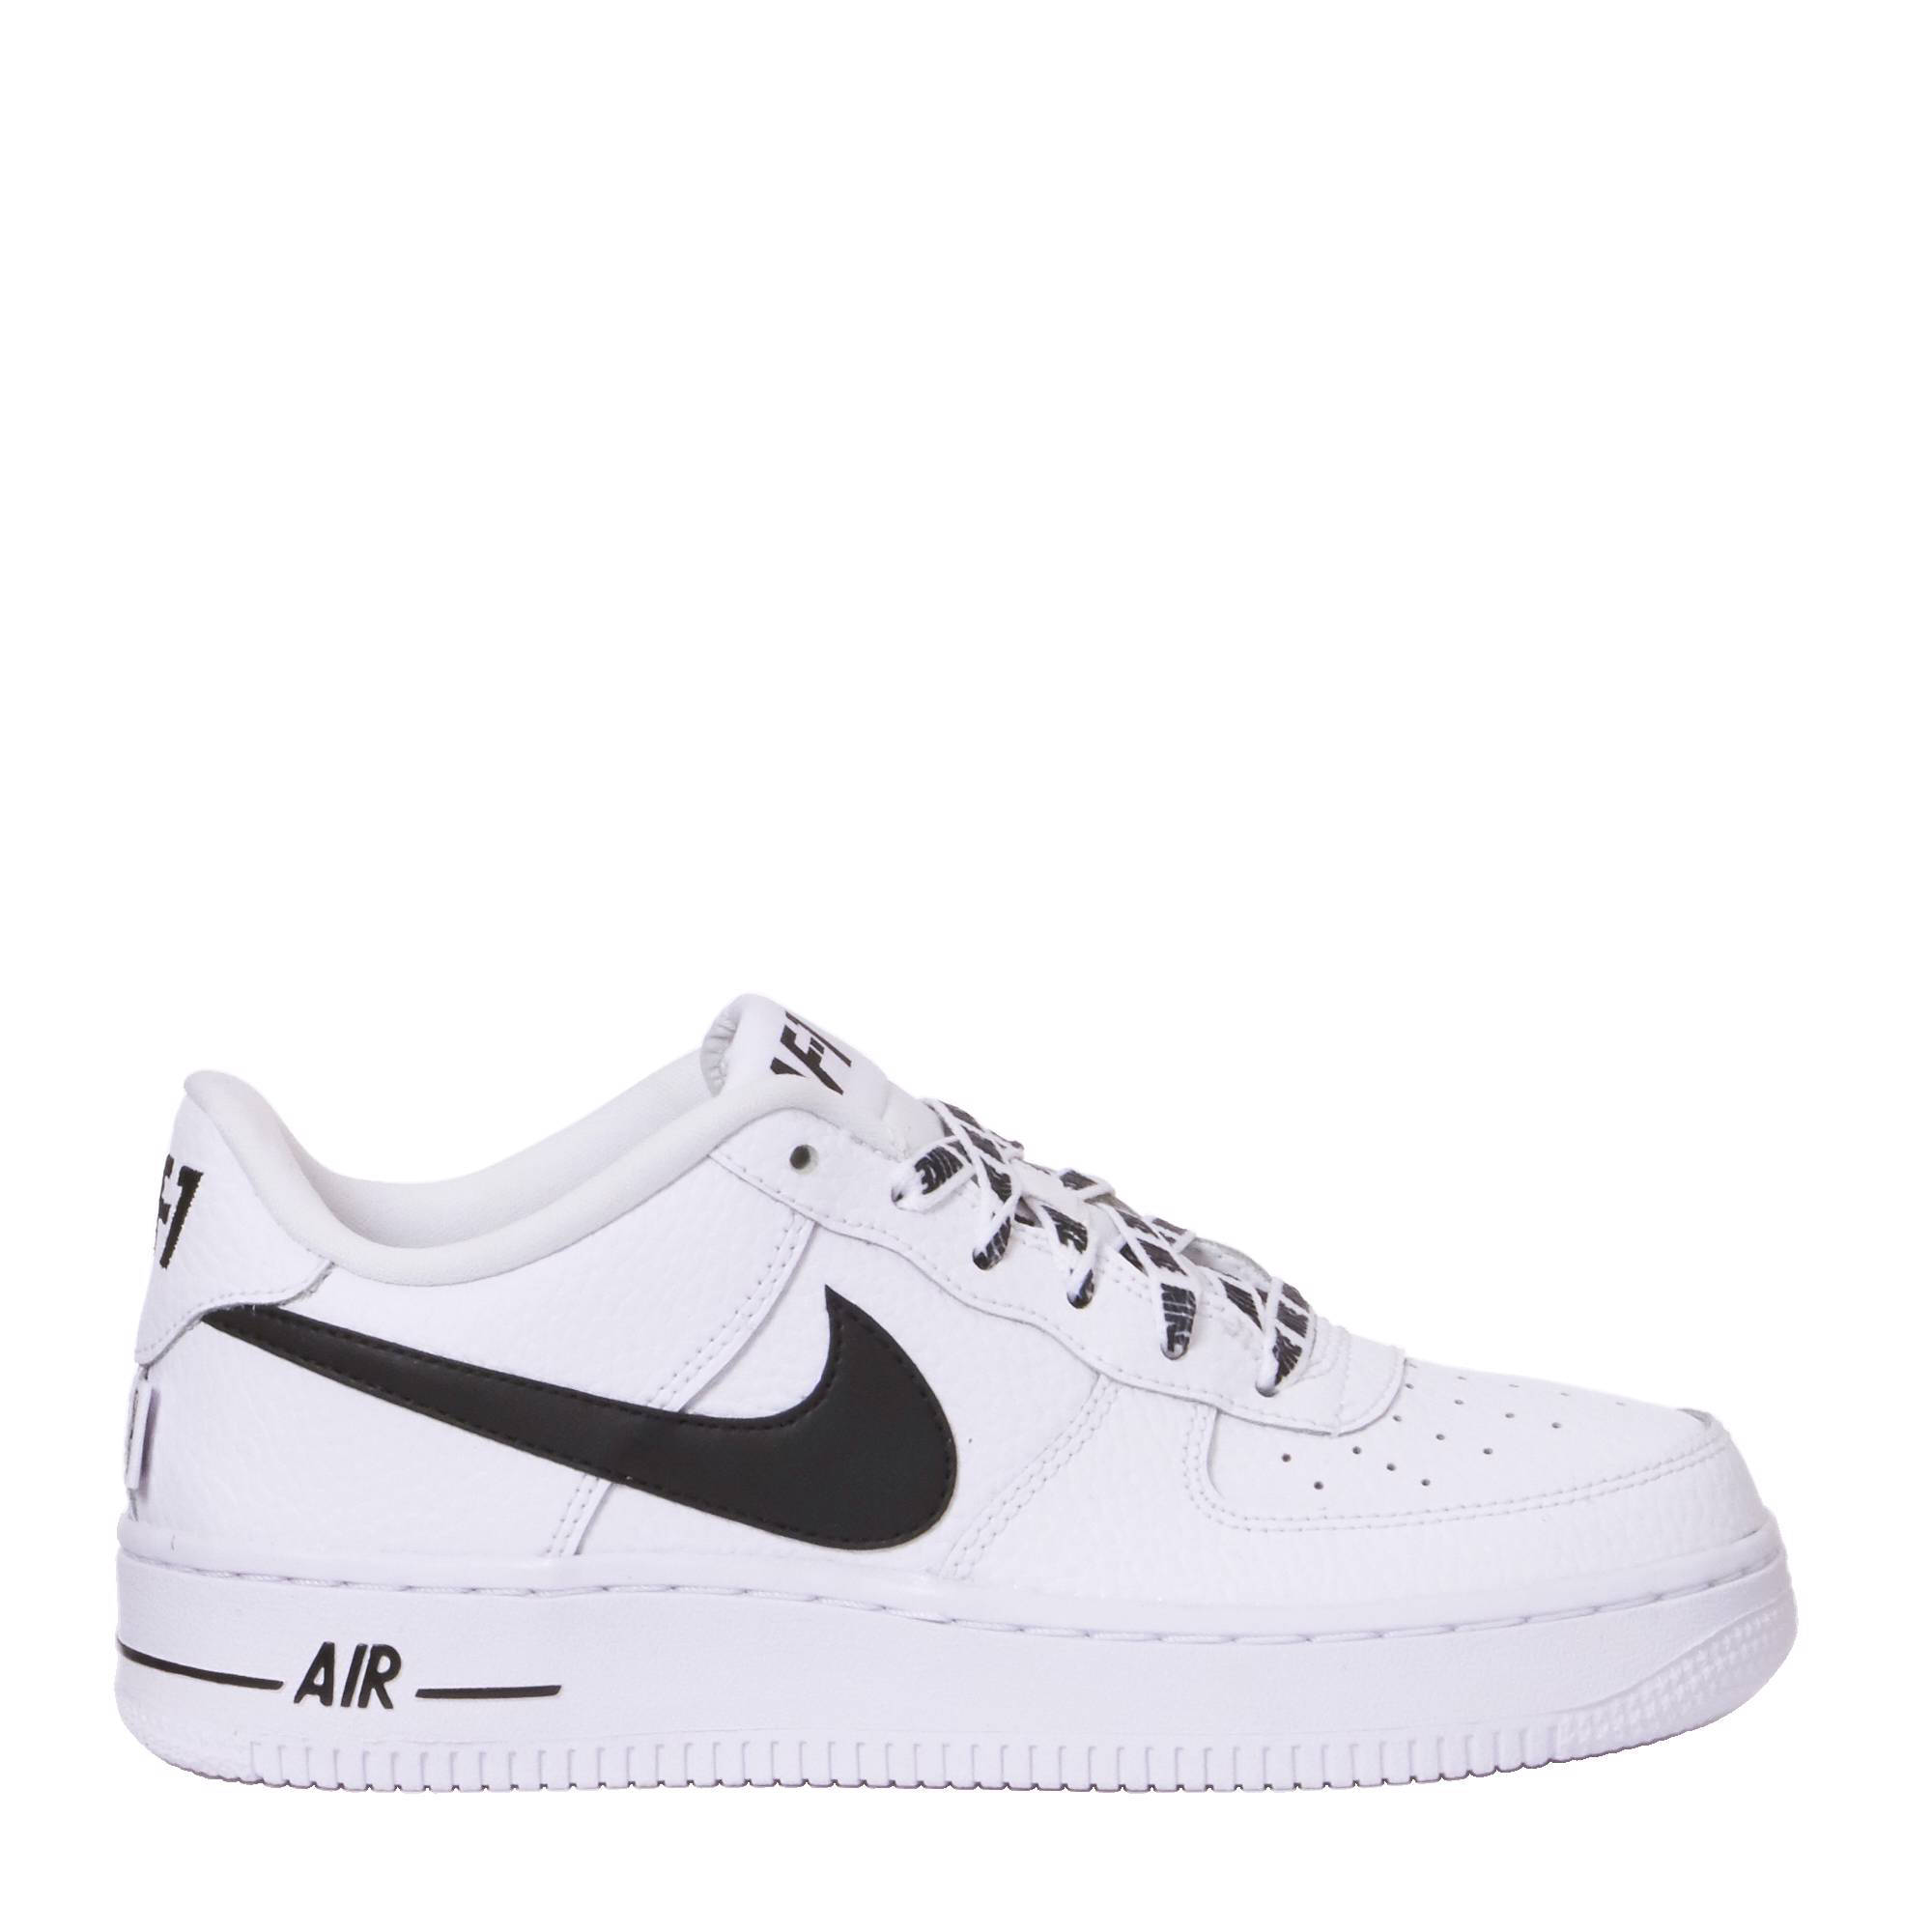 Air Force 1 LV8 sneakers